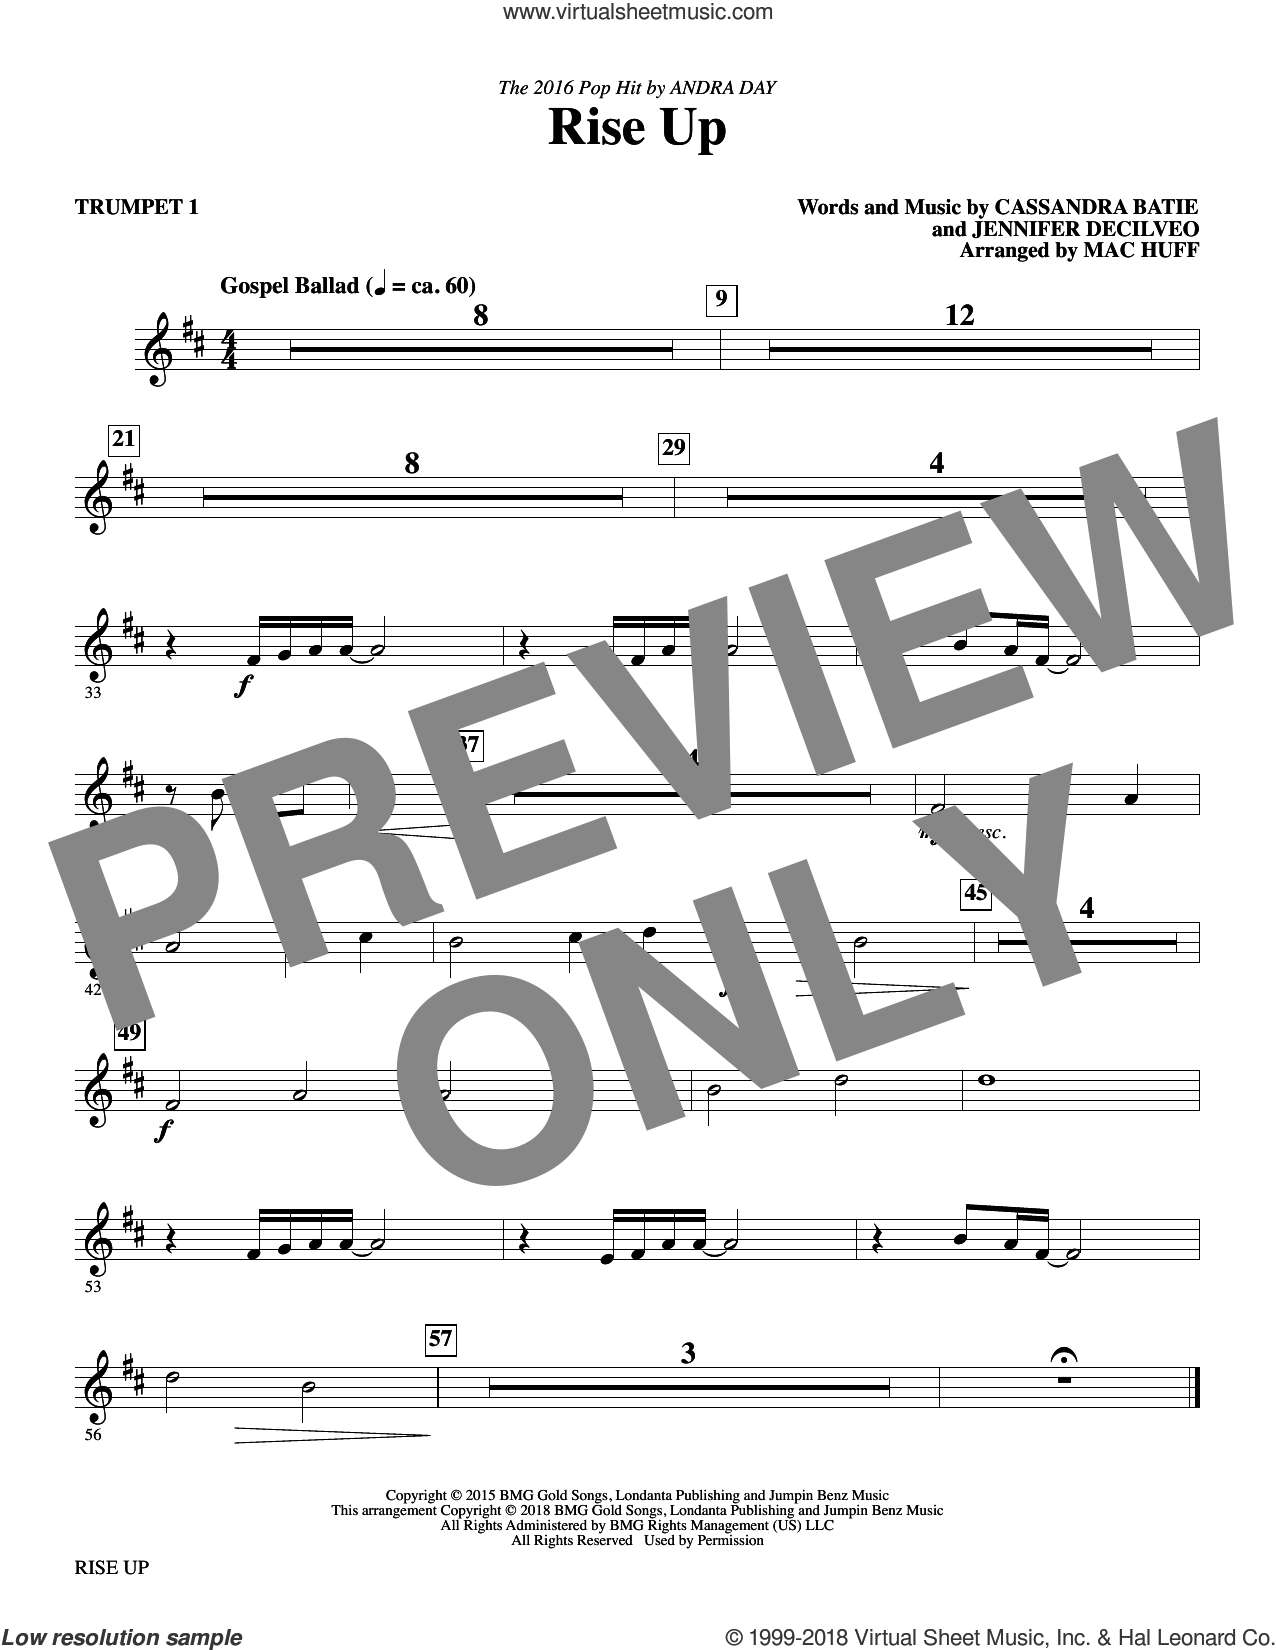 Rise Up (arr. Mac Huff) sheet music for orchestra/band (trumpet 1) by Mac Huff, Andra Day, Cassandra Batie and Jennifer Decilveo, intermediate skill level